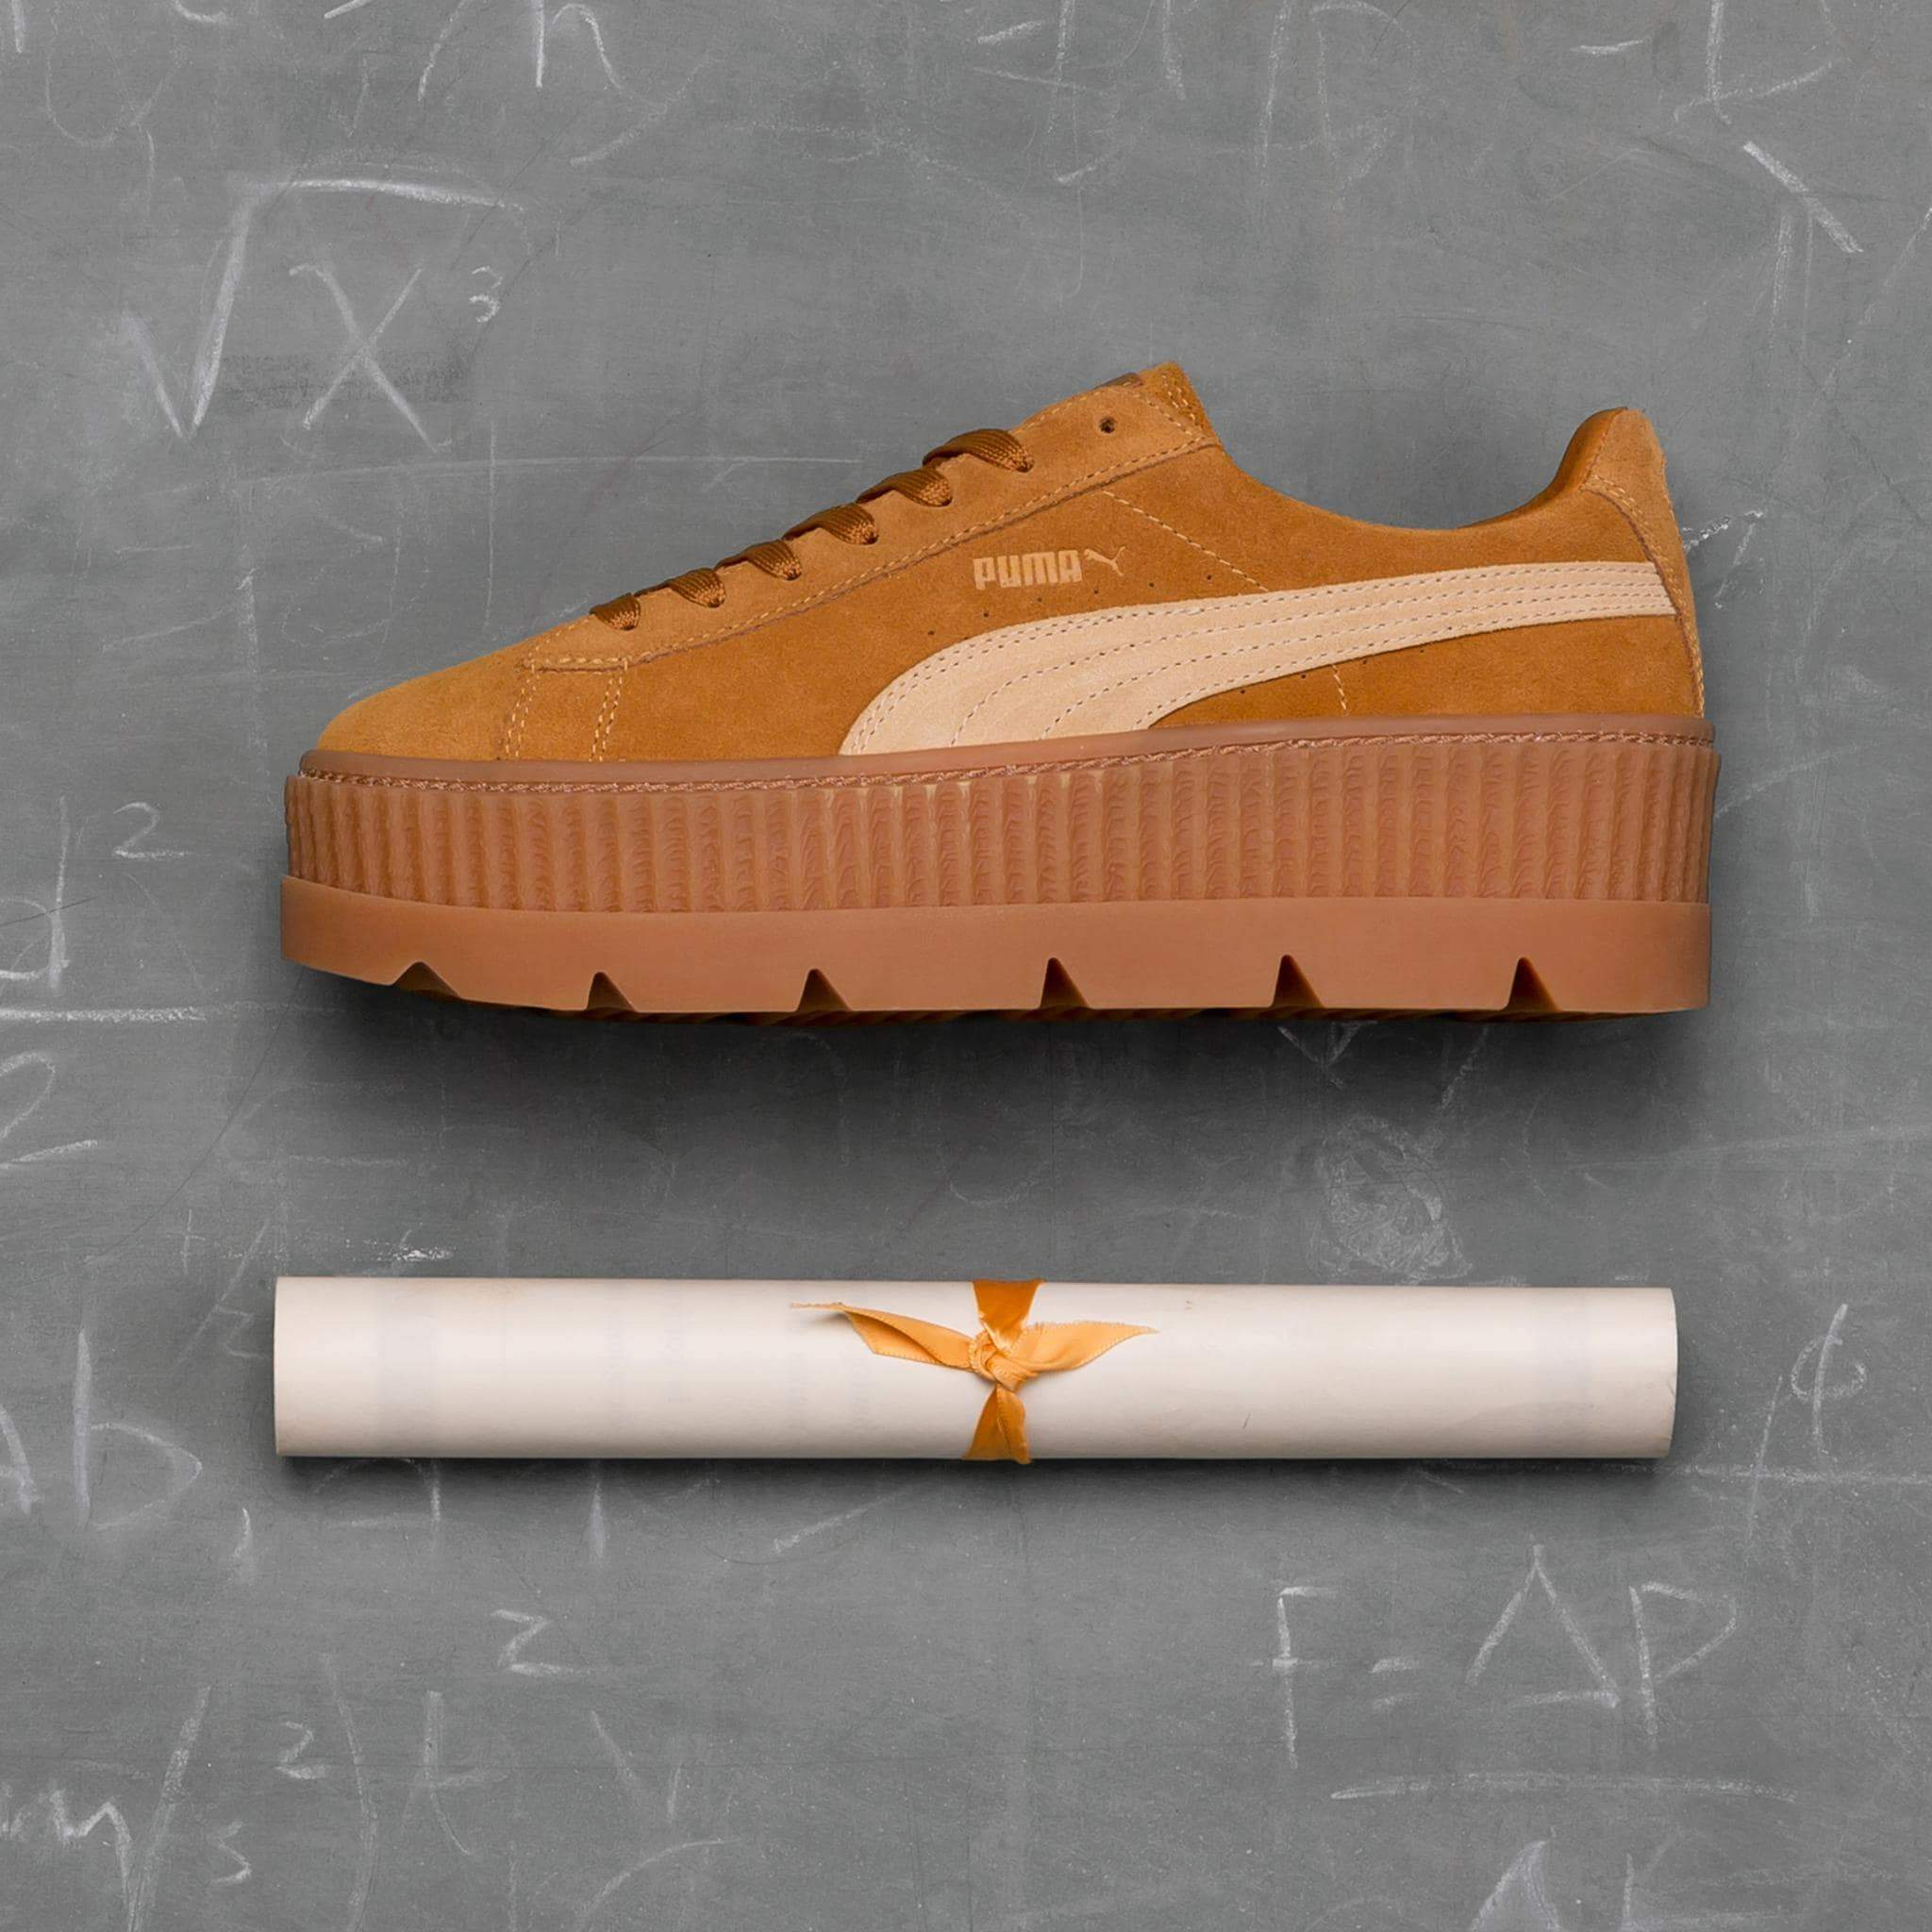 online store 4ad2a 5eed1 Rihanna x Puma Fenty Cleated Creeper 'Golden Brown-Lark'